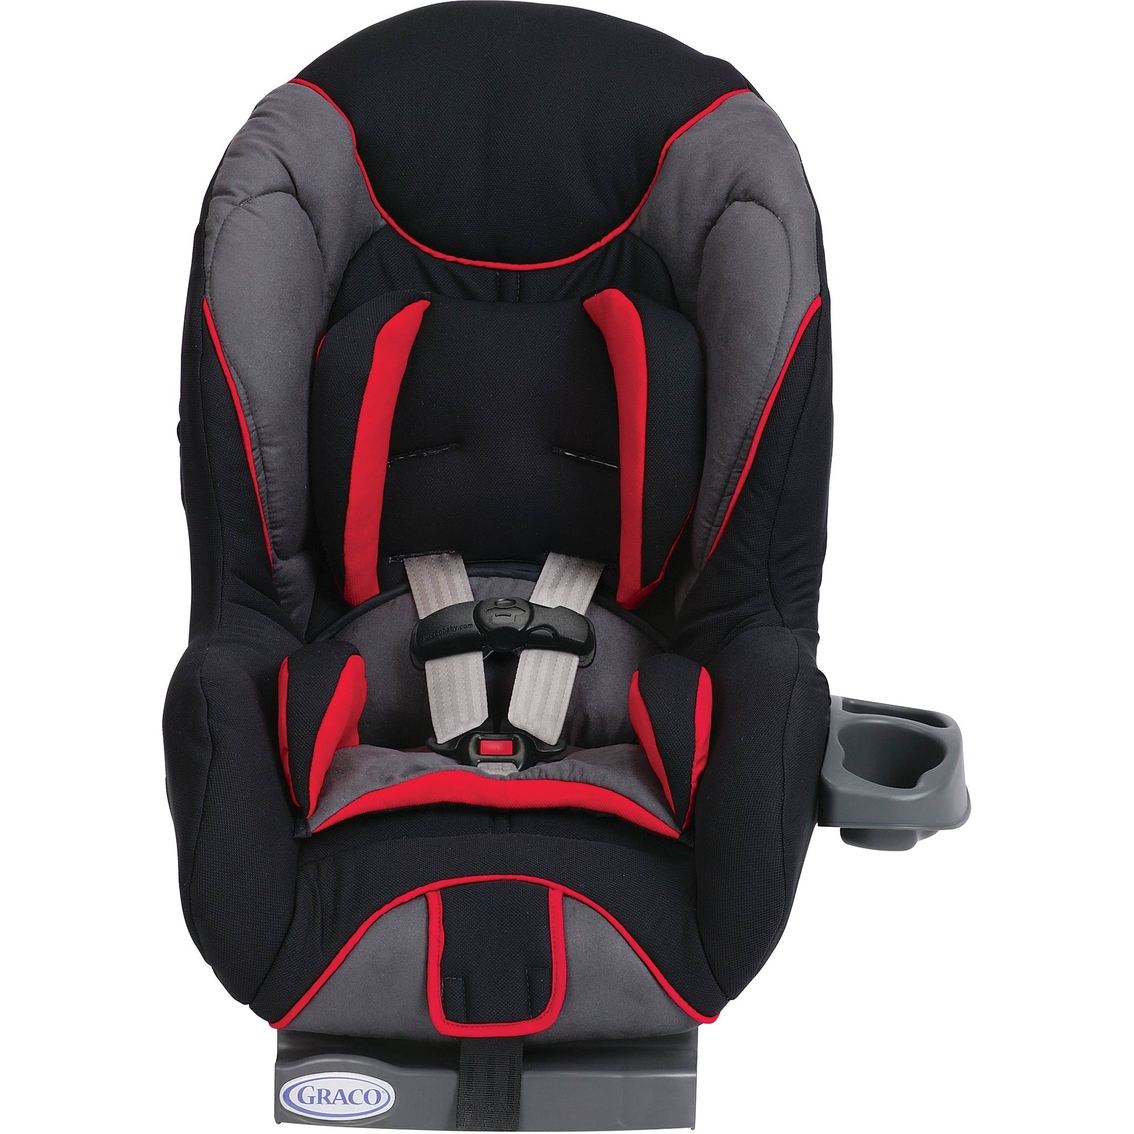 graco comfortsport convertible car seat convertible seats baby toys shop the exchange. Black Bedroom Furniture Sets. Home Design Ideas